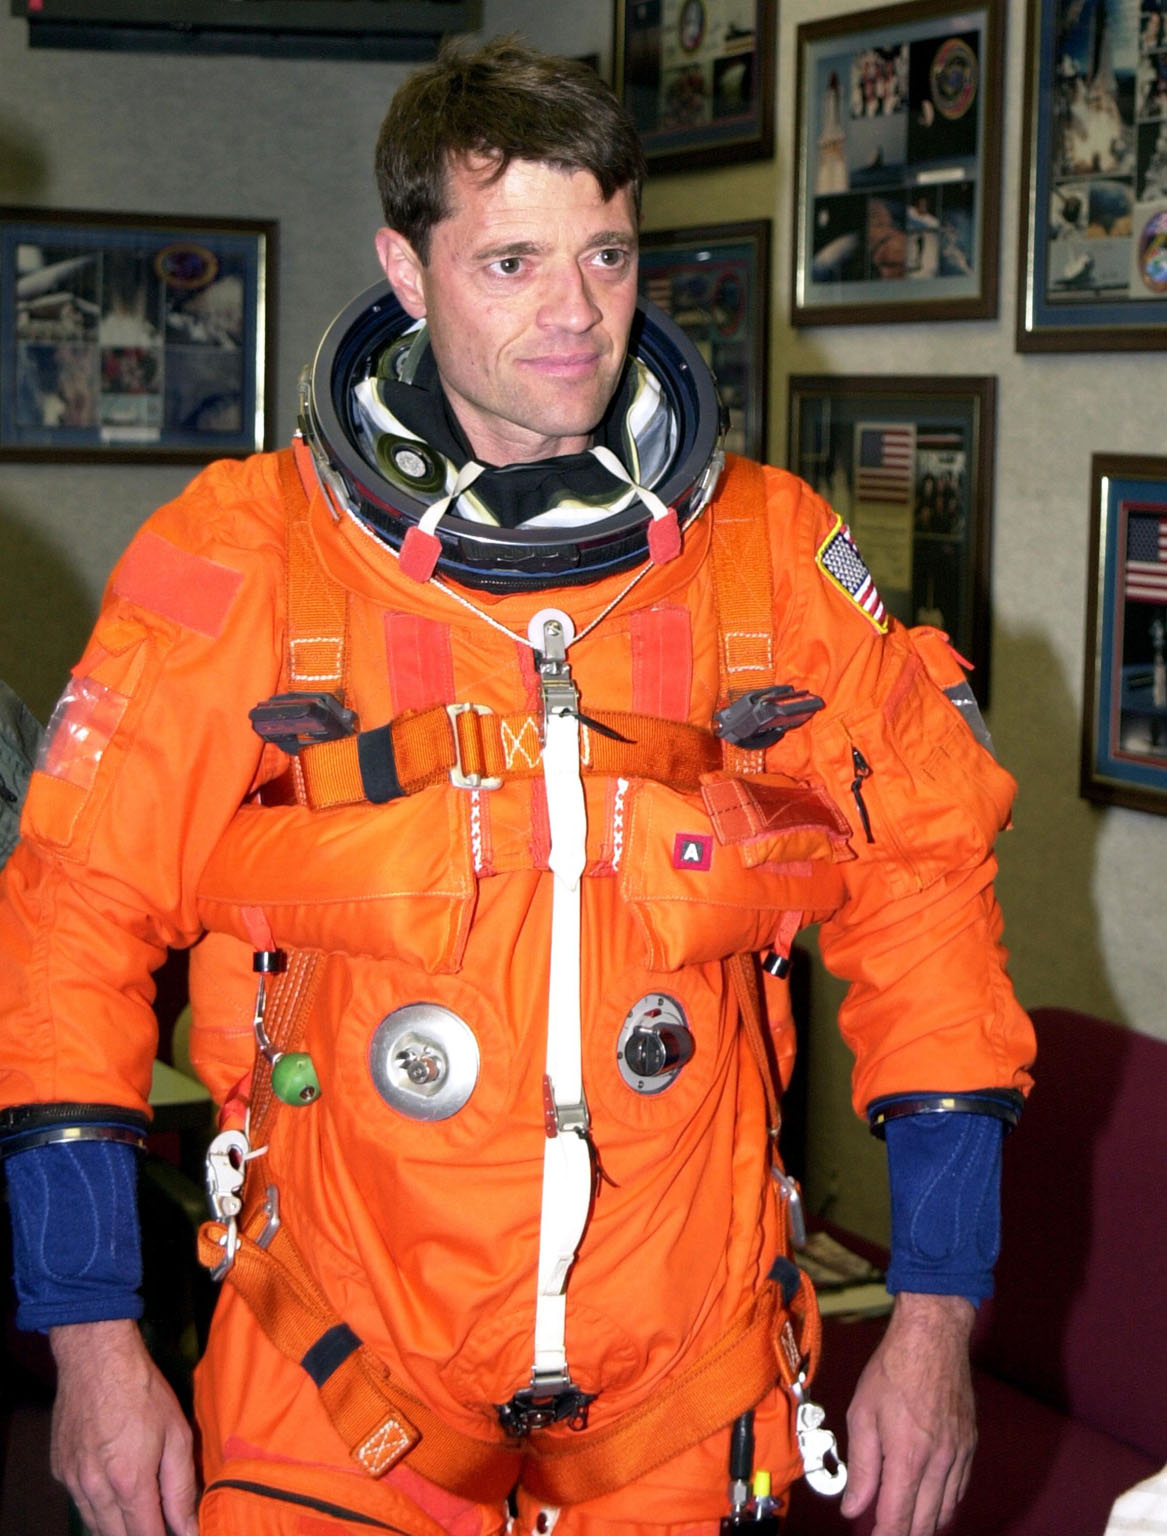 KENNEDY SPACE CENTER, FLA. --STS-112 Commander Jeffrey Ashby is suited up and ready to participate in landing exercises in the Shuttle Training Aircraft at the Shuttle Landing Facility.